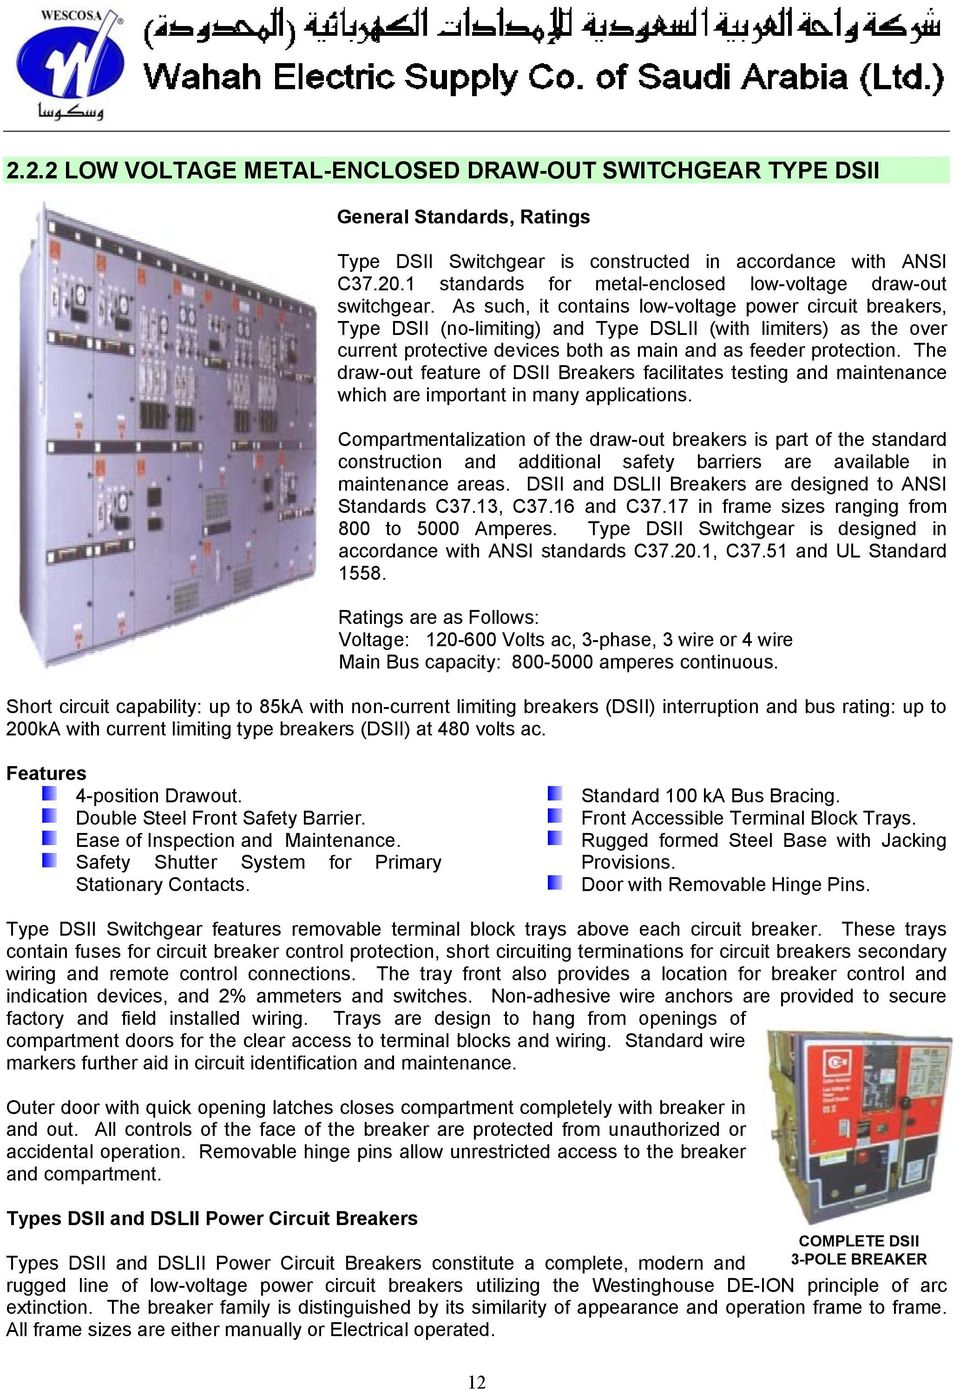 Wahah Electric Supply Co Of Saudi Arabia Ltd Wescosa Pdf 4 Wire Schematic Diagram 480 Volt As Such It Contains Low Voltage Power Circuit Breakers Type Dsii No